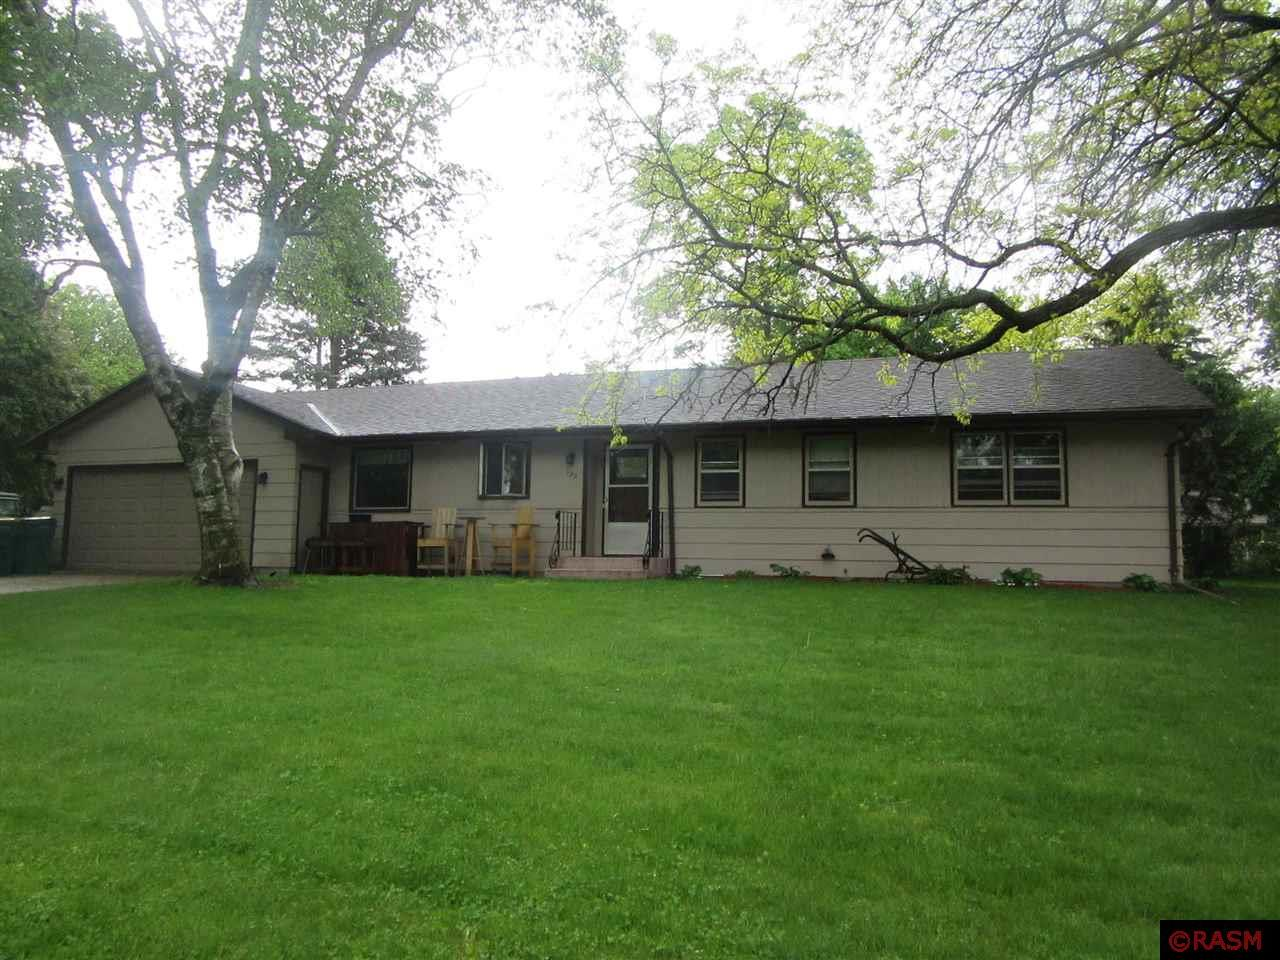 This charming rambler is situated in a quiet Le Sueur neighborhood, just around the corner from the Le Sueur Community Center, high school, and park. With 2 bedrooms accompanying the master suite on the main floor, this home provides plenty of living space for your family. The fireplaces in the living room and lower level make this a cozy home for the colder seasons and the sizeable sun room and back yard patio make this an excellent home for relaxation and entertainment during the warmer months. Call to book your private showing today!